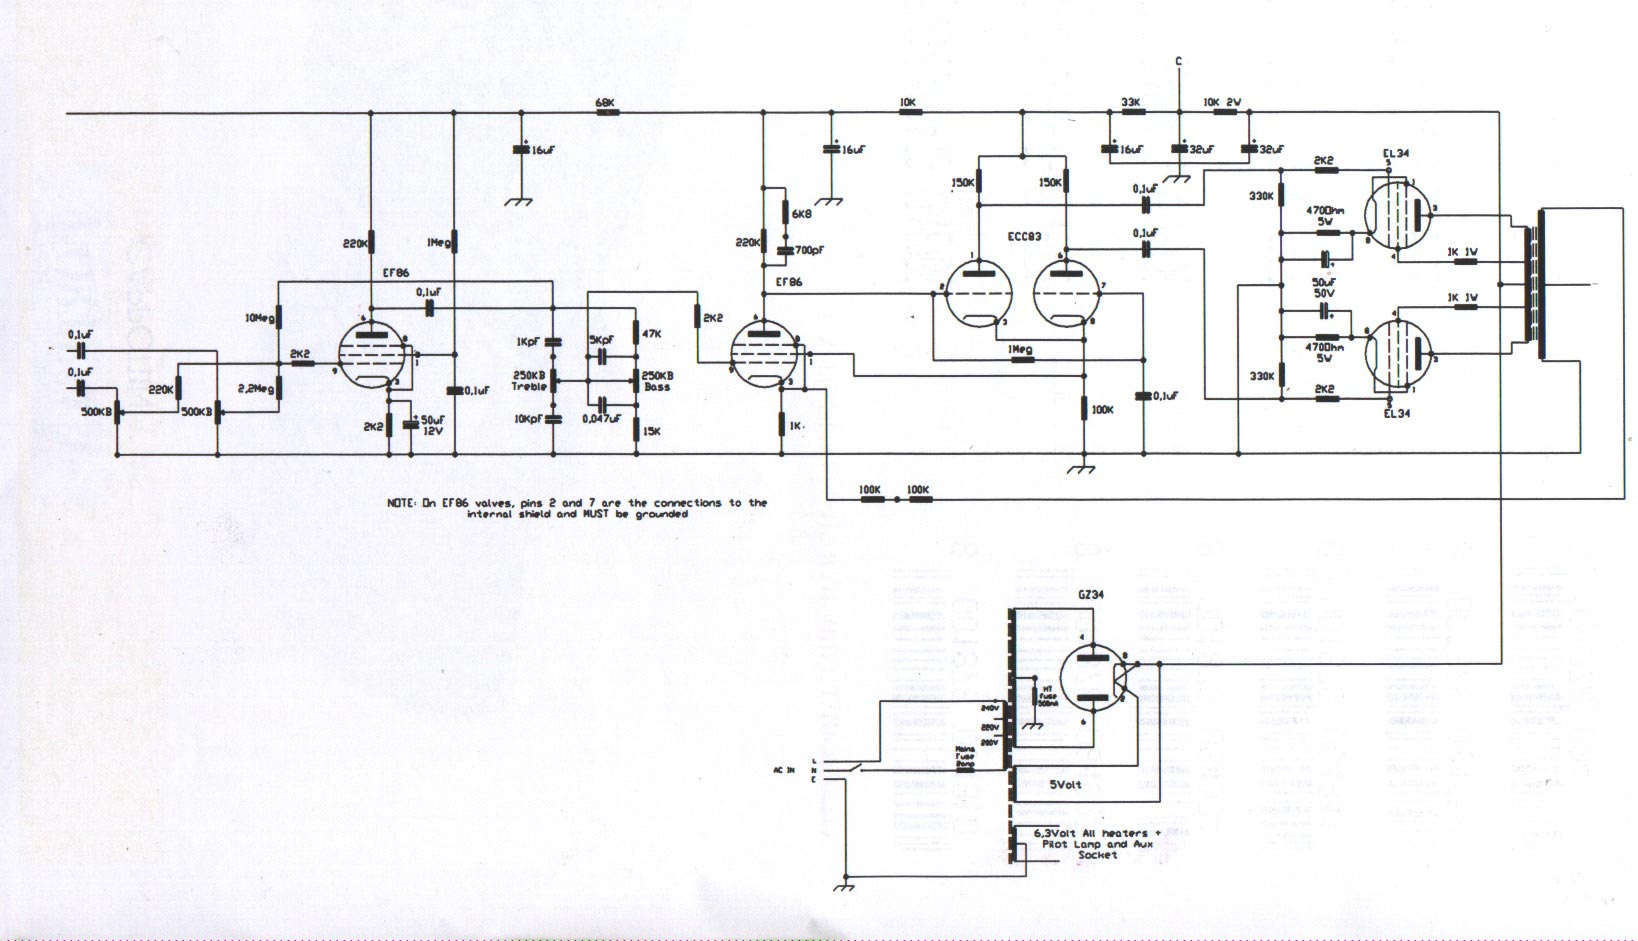 bass guitar wiring diagram klf220 linear conchord 30 & l50 schematic